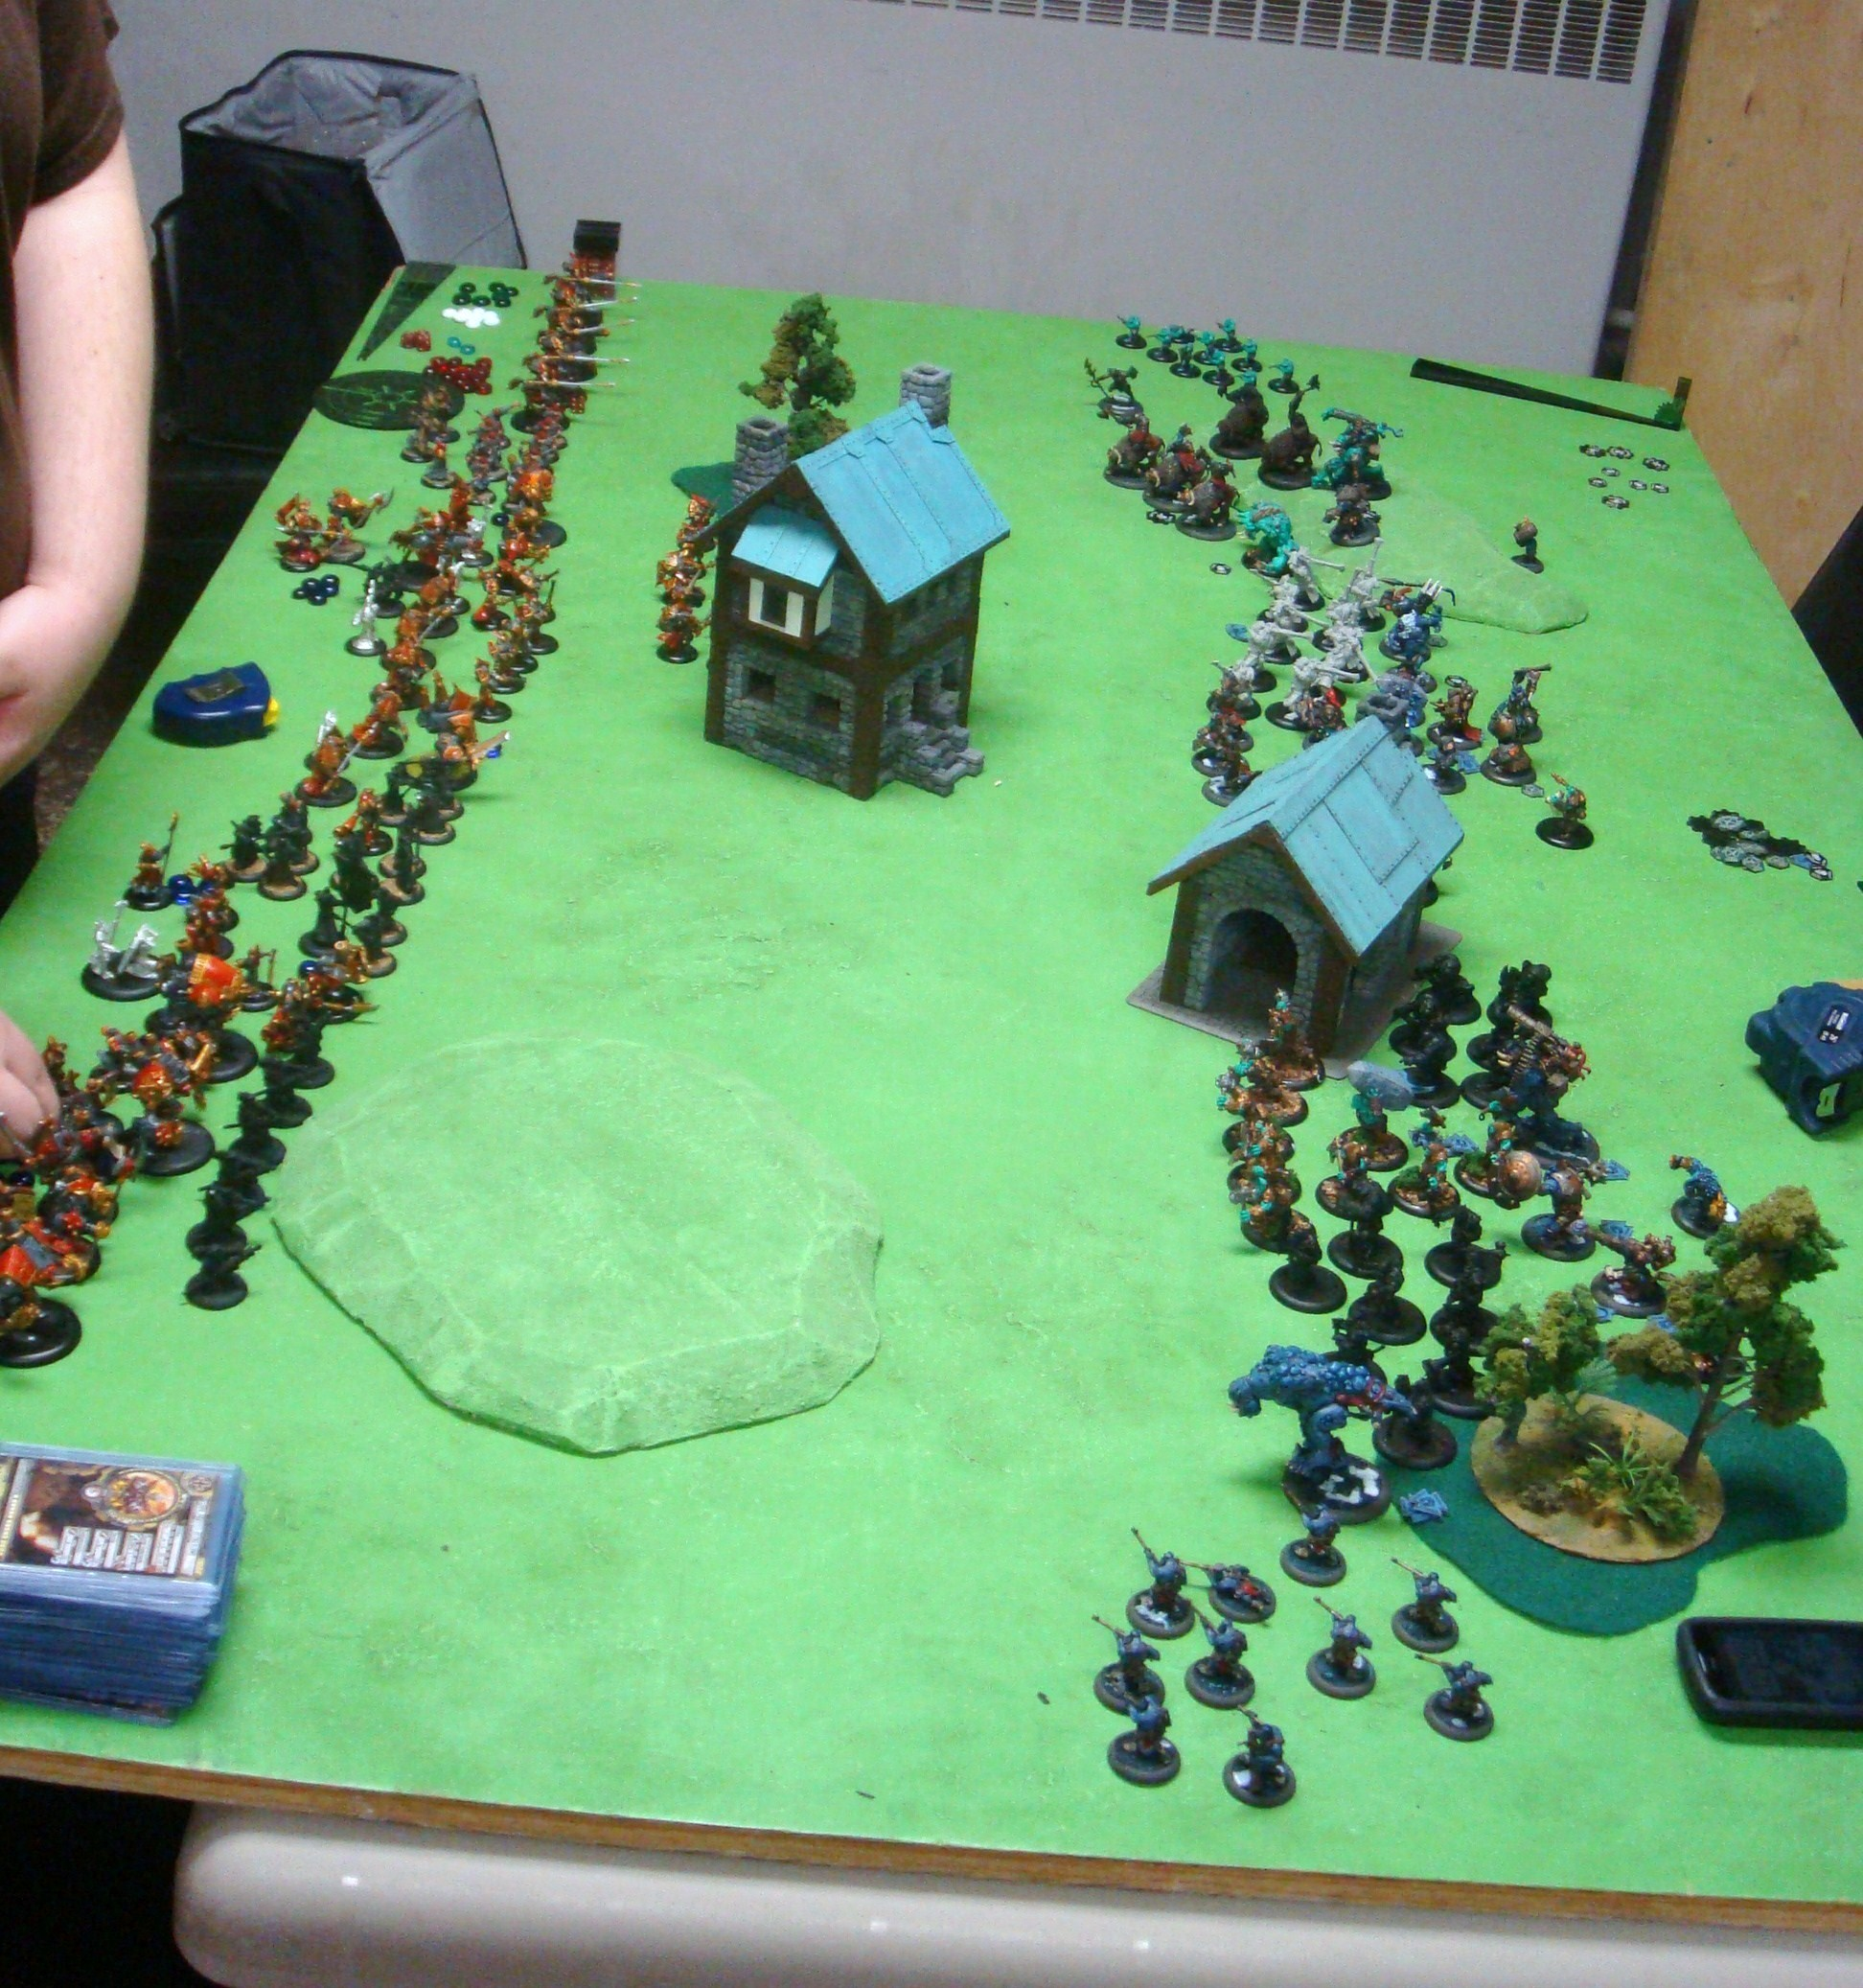 Warmachine Hordes Protectorate of Menoth Trolls 150pt Battle Report - Part 1